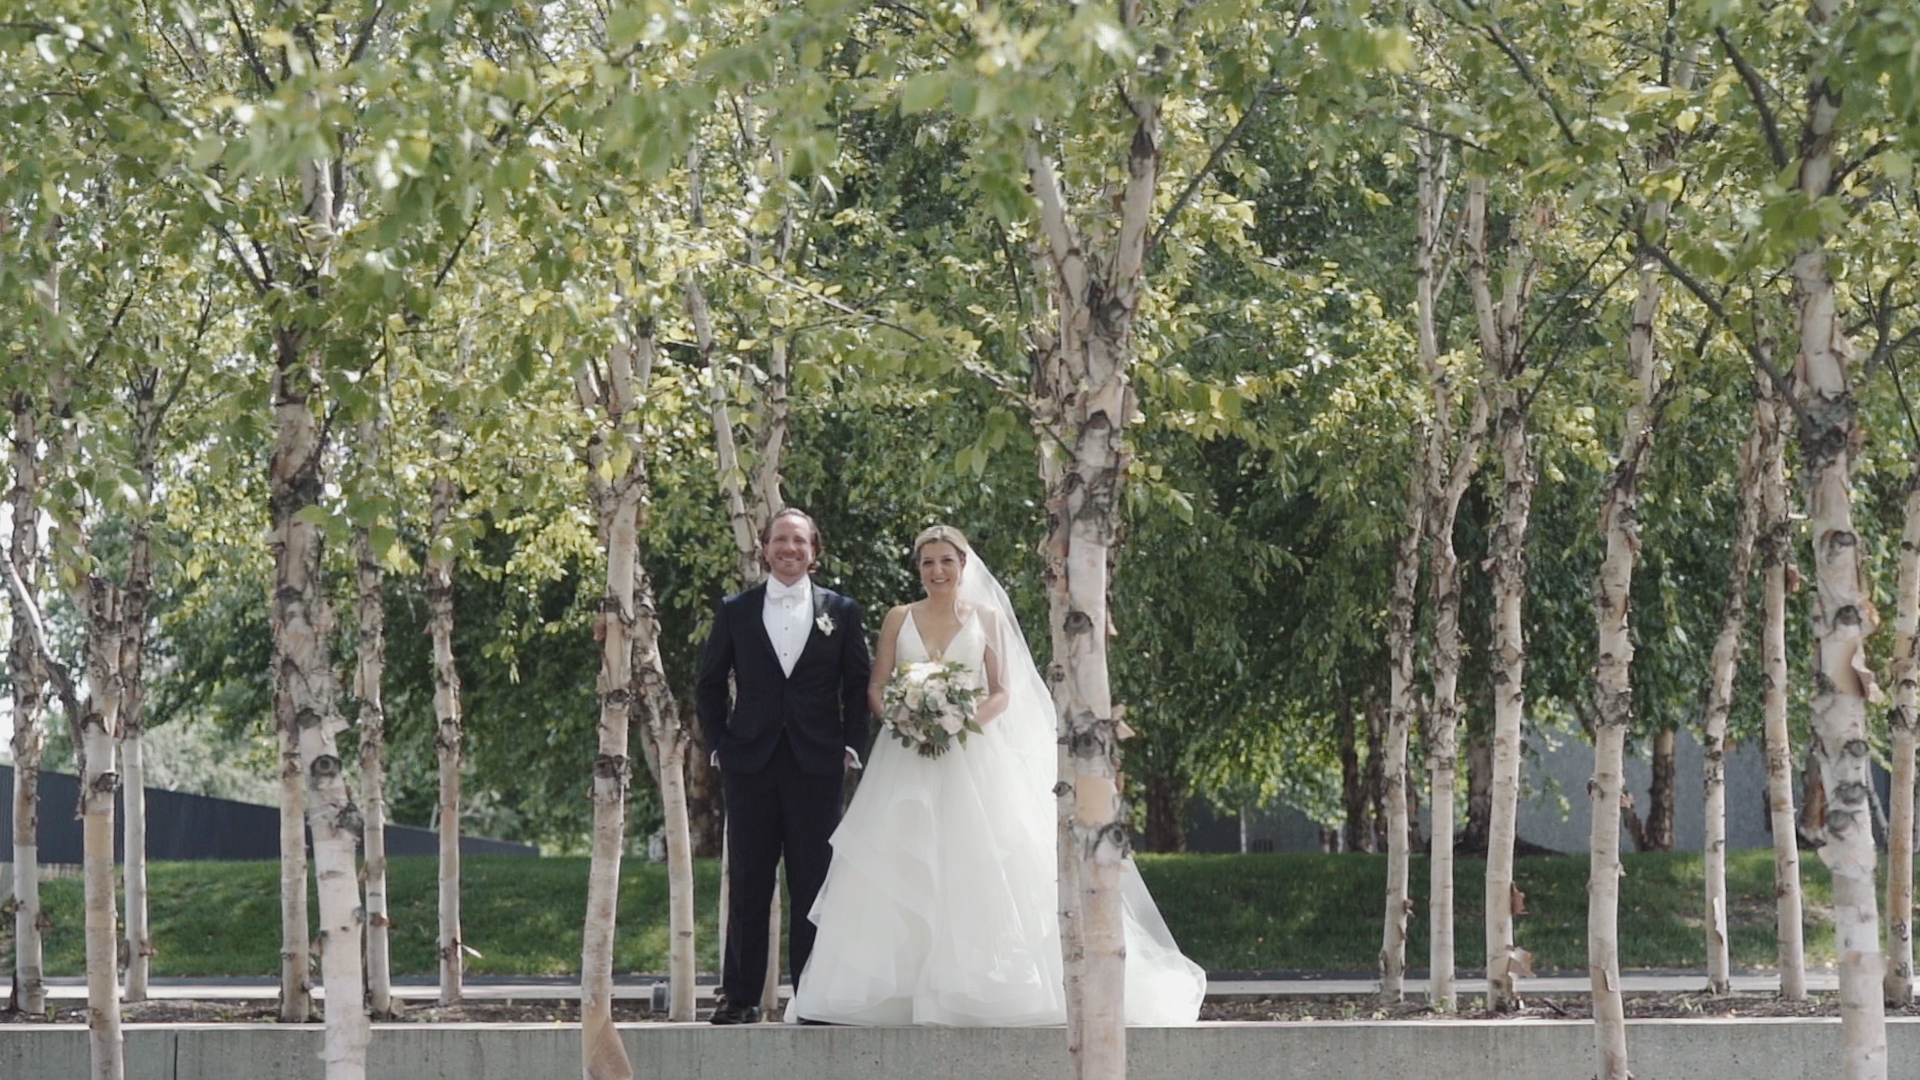 Forest Park Wedding Video - First Look Art Museum